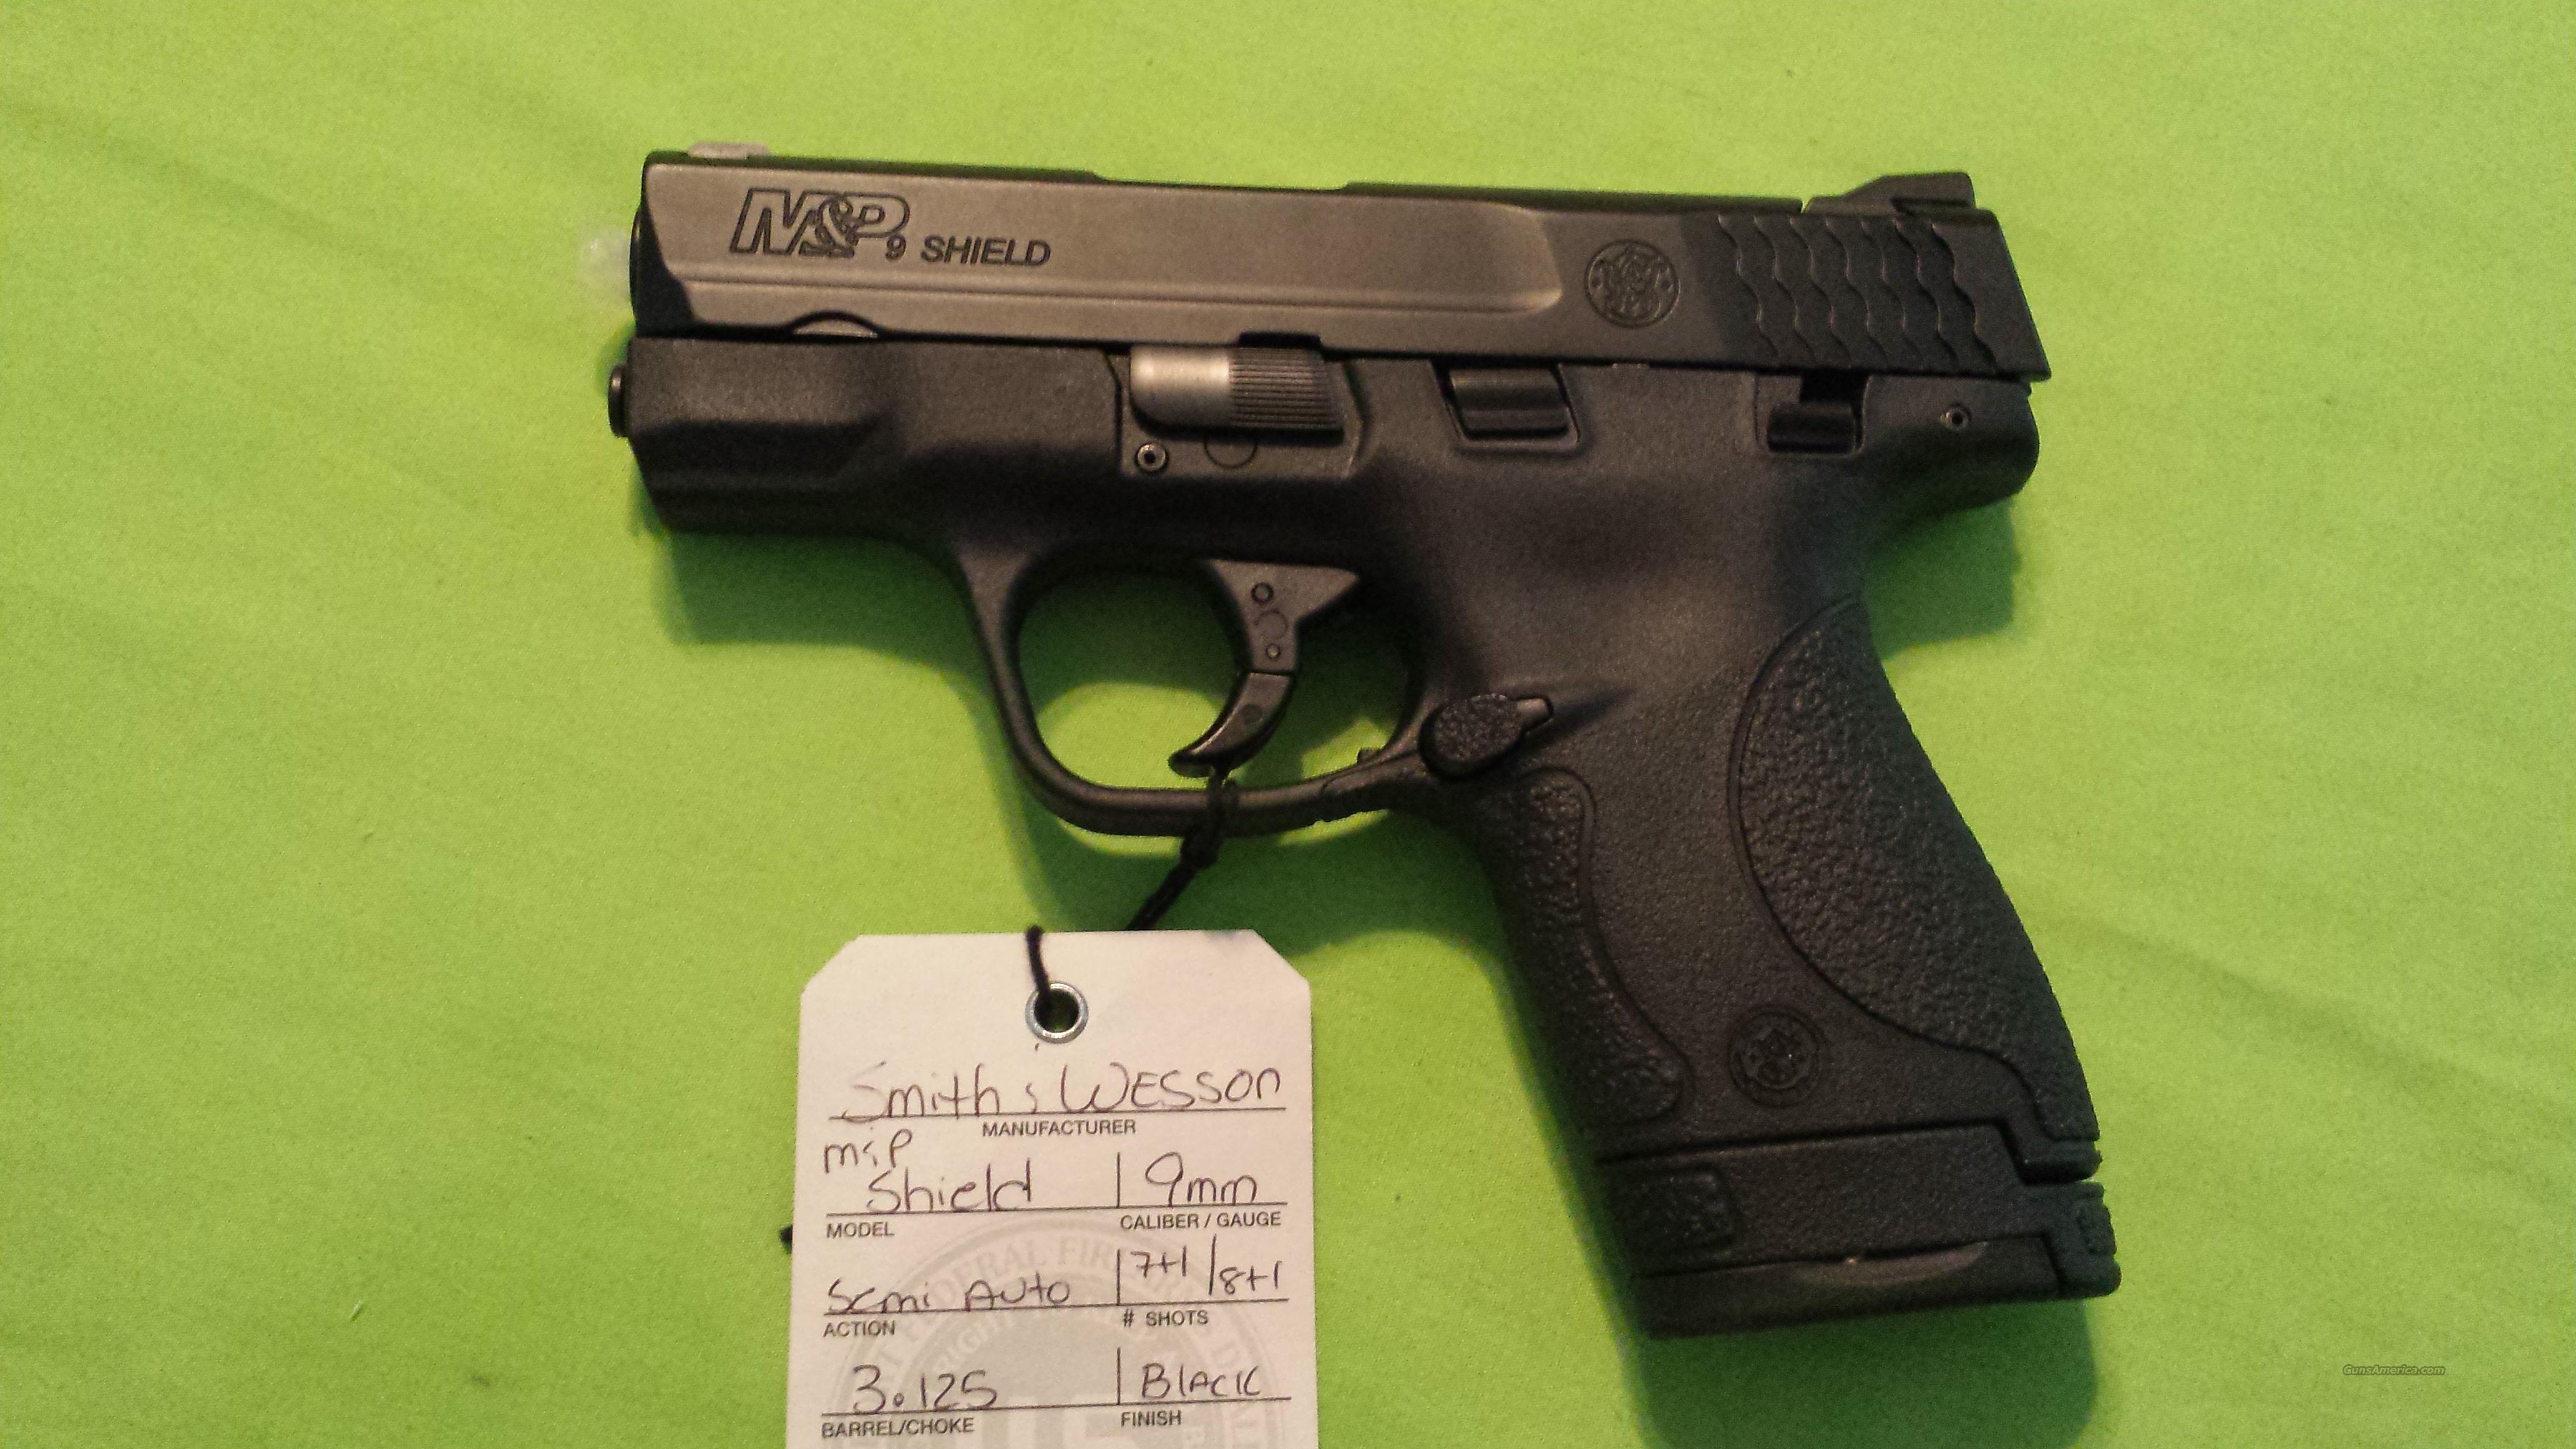 SMITH & WESSON M&P 9 SHIELD 9MM 7/8RD BLK...NIB  Guns > Pistols > Smith & Wesson Pistols - Autos > Shield